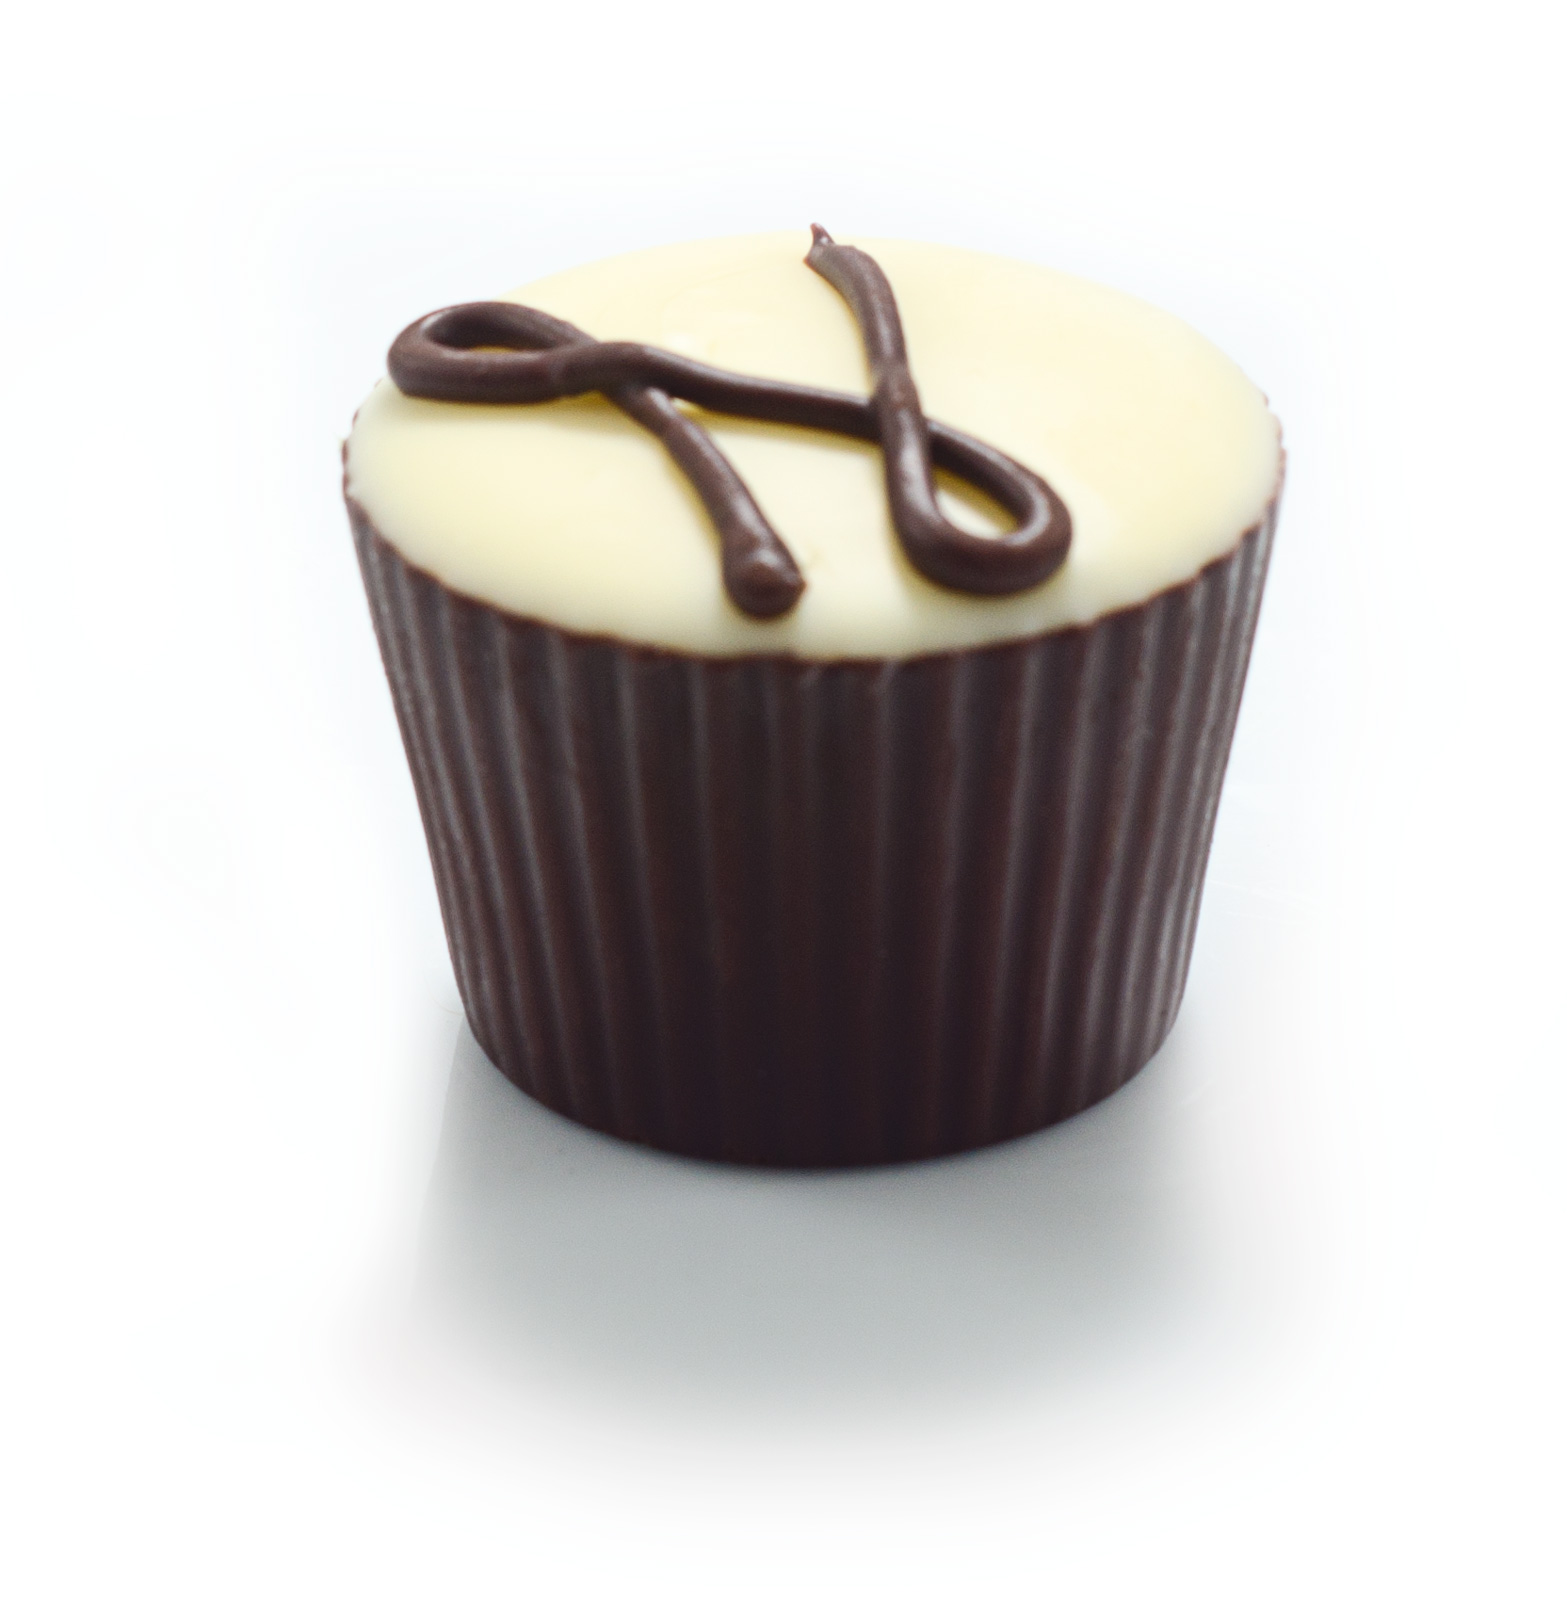 <b>LATTE</b><P ALIGN=Left>Dark chocolate casing with white chocolate center infused with fresh coffee</P>